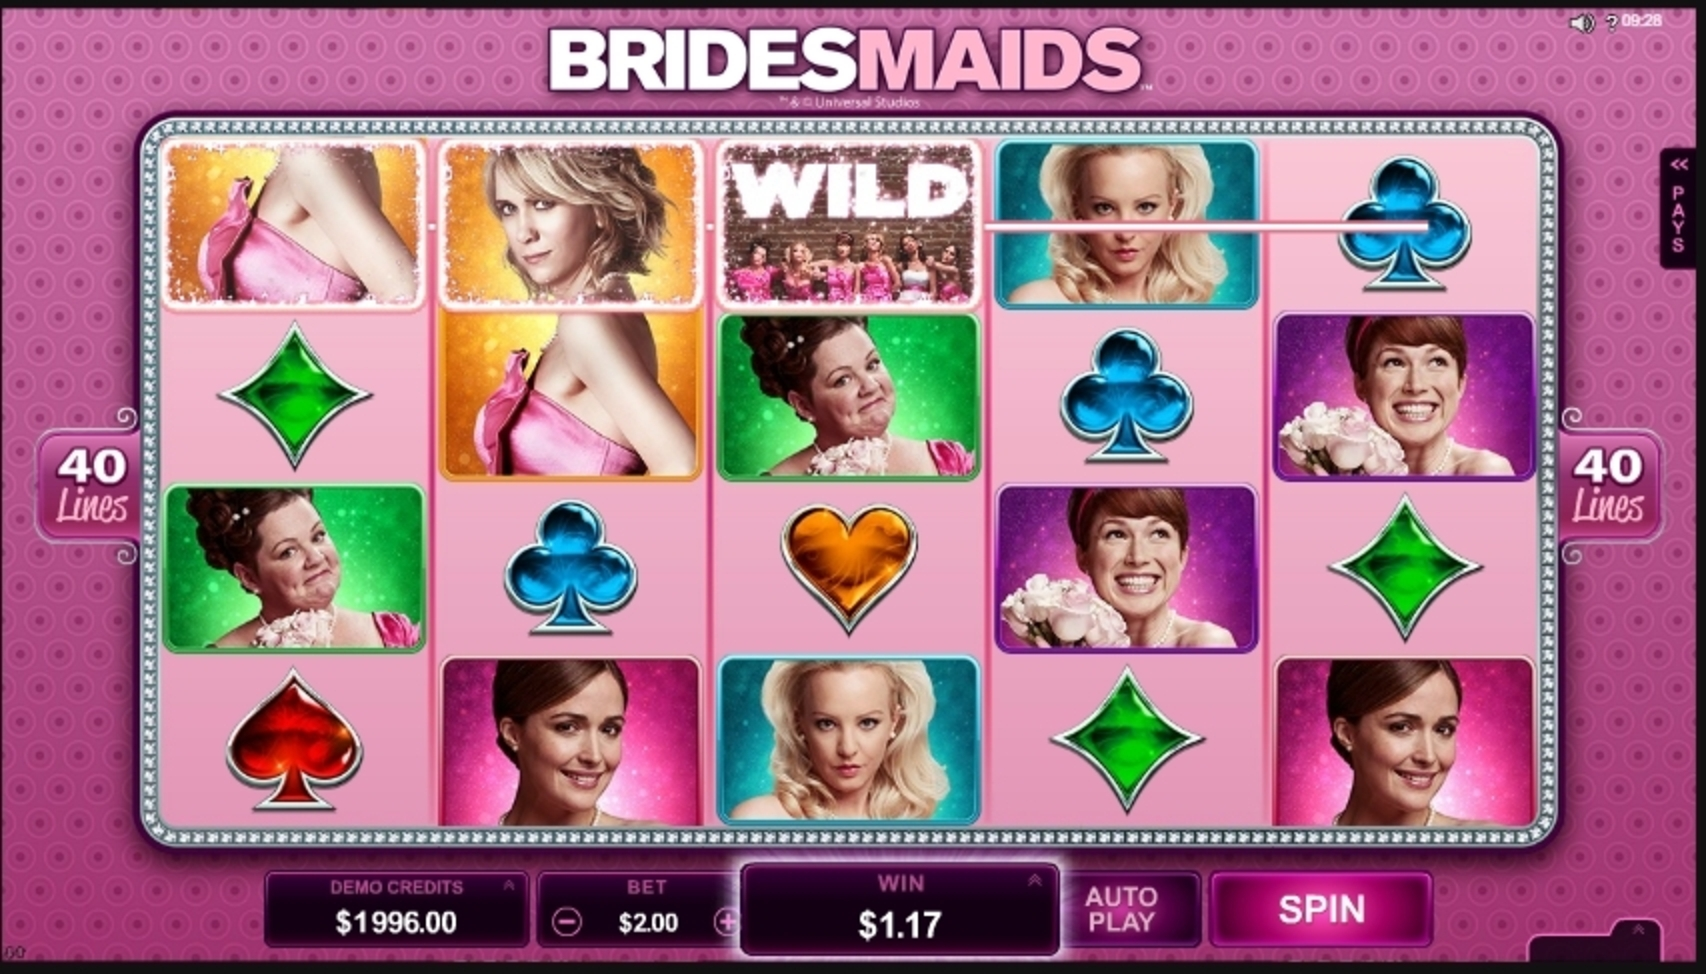 Win Money in Bridesmaids Free Slot Game by Microgaming